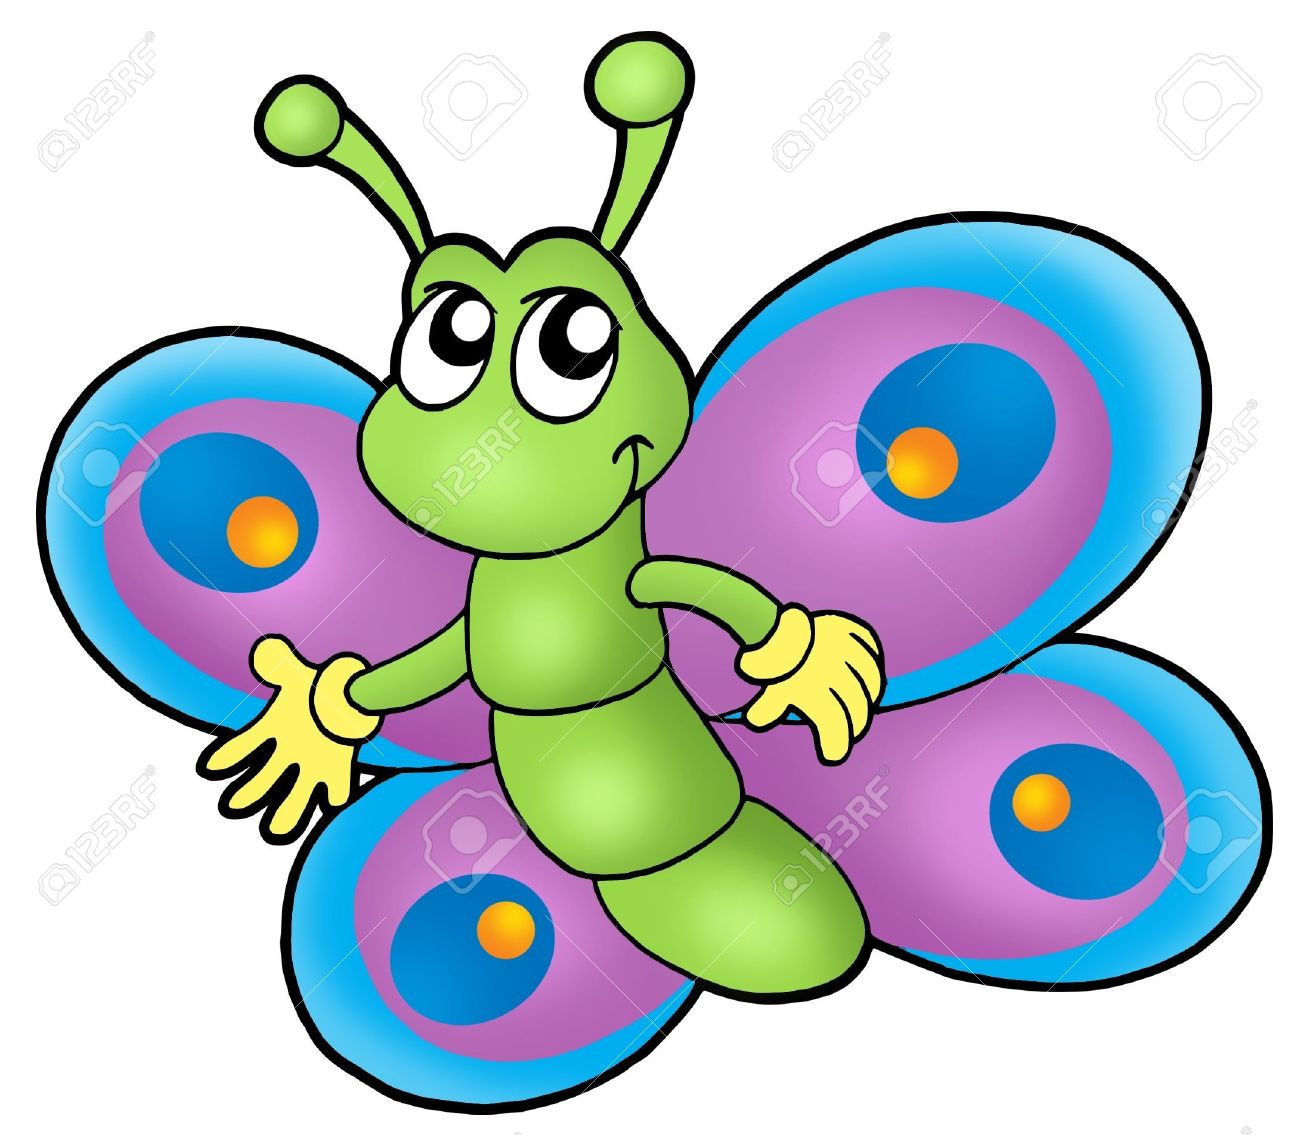 small cartoon butterfly color illustration stock photo picture